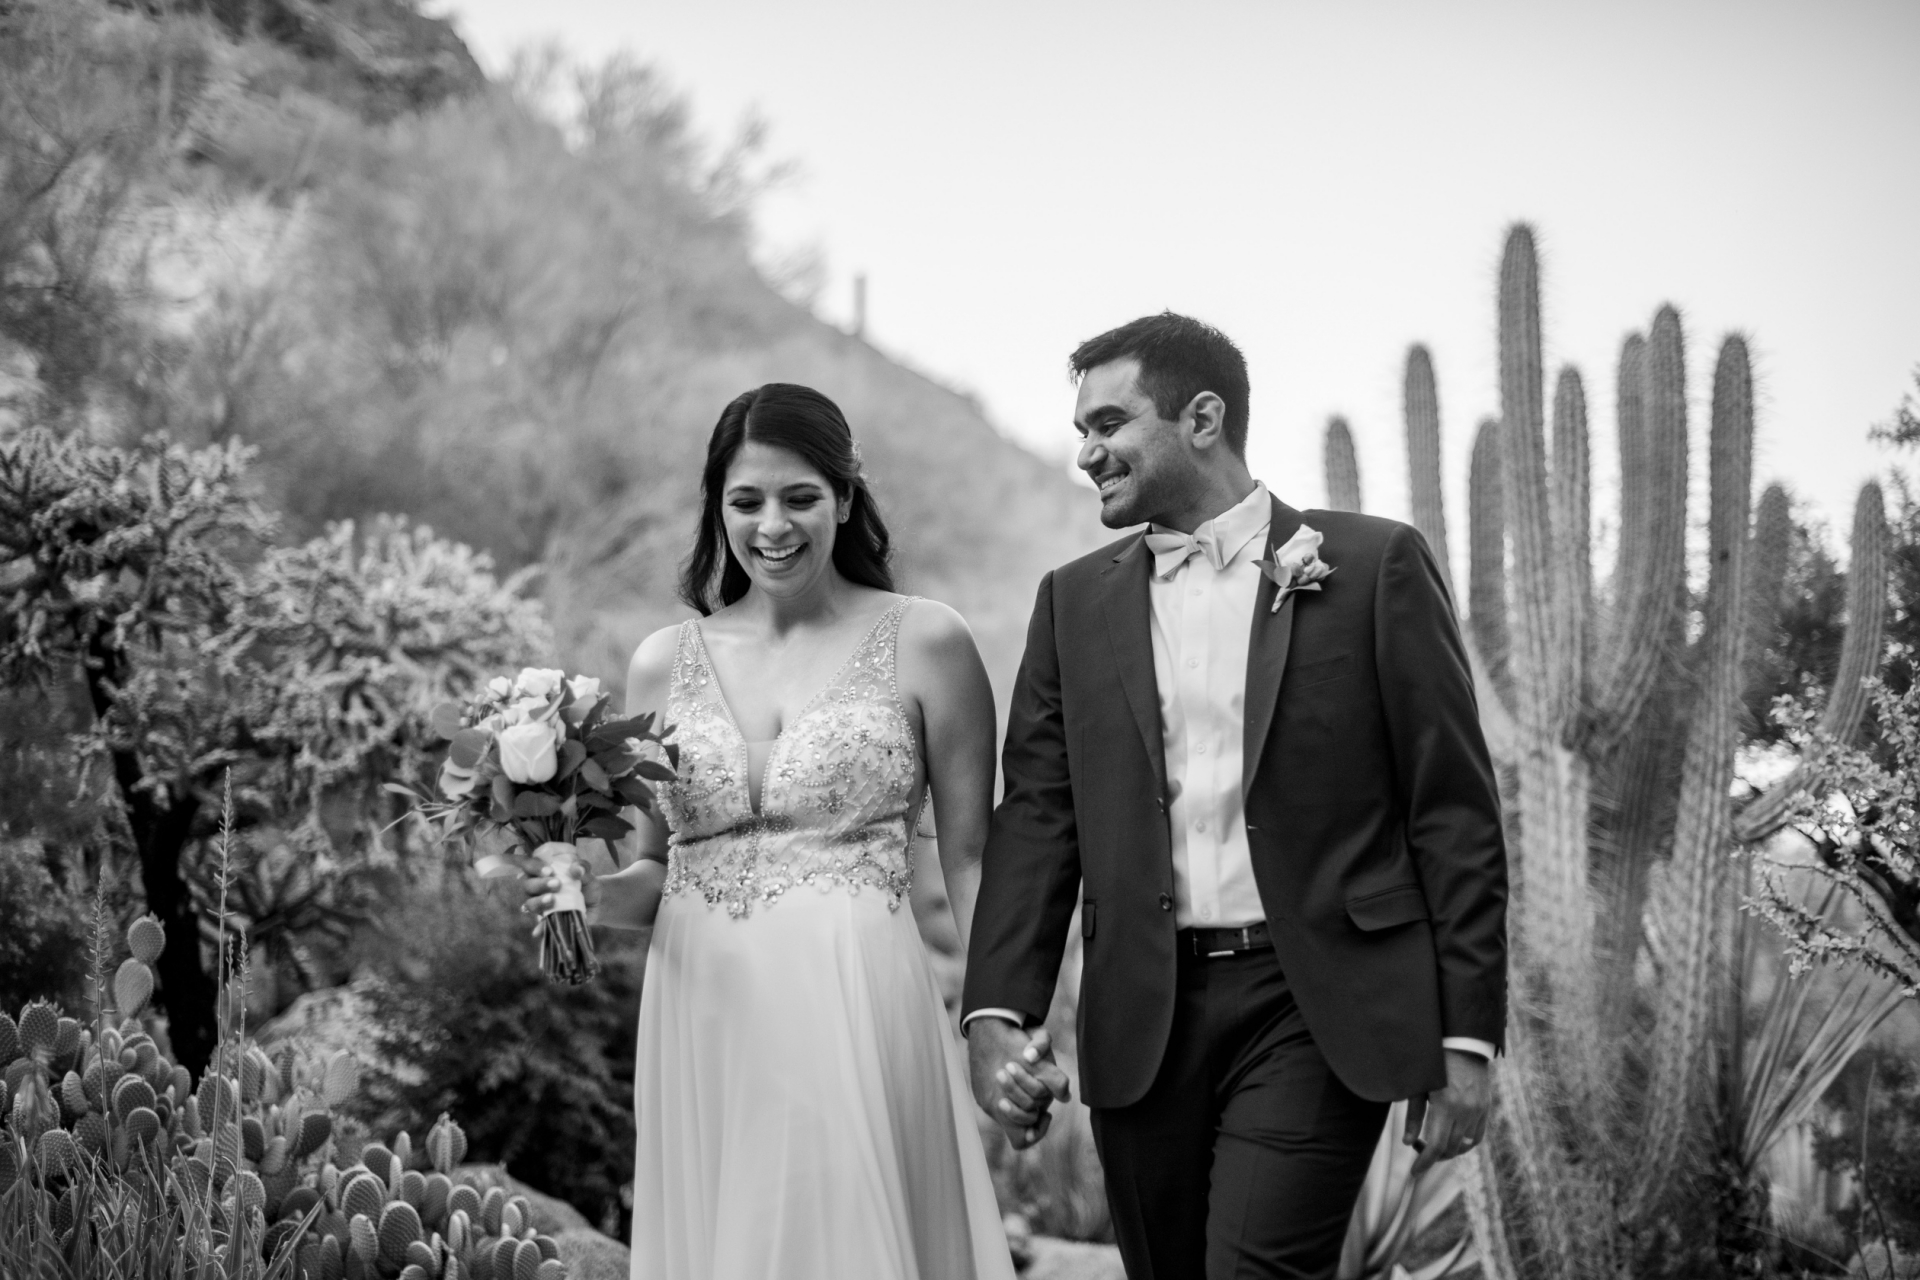 Outdoor Wedding Venue Portrait in Scottsdale, Arizona | The groom looks at his bride with pride and love